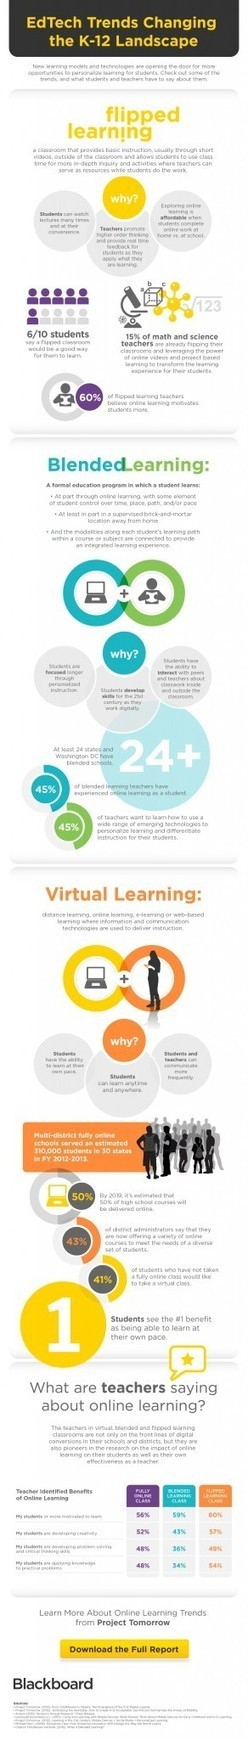 EdTech Trends Changing the K12 Landscape Infographic | Edtech | Scoop.it